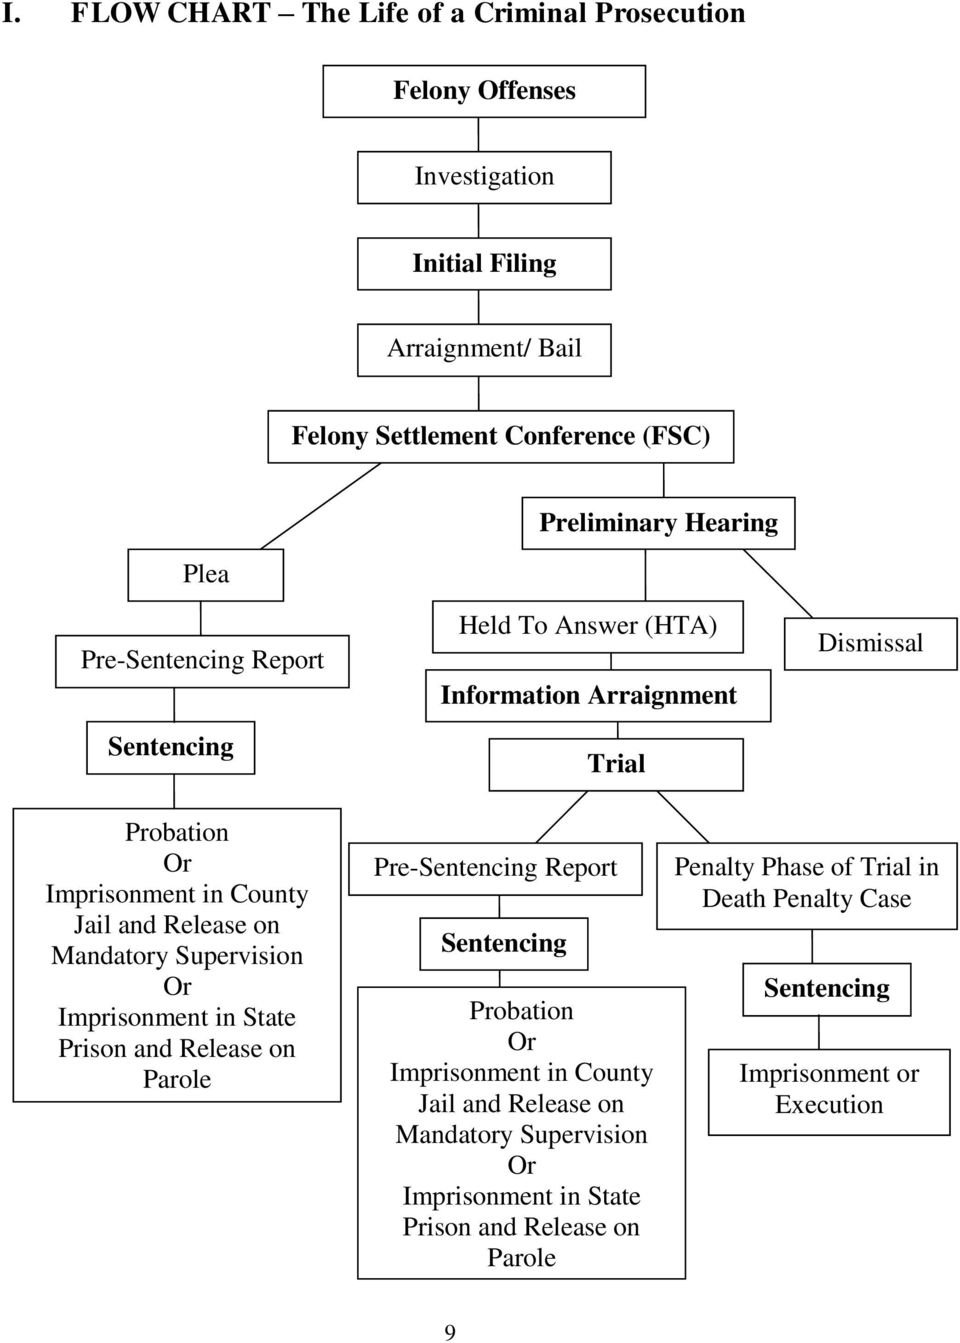 Release on Mandatory Supervision Or Imprisonment in State Prison and Release on Parole Pre-Sentencing Report Sentencing Probation Or Imprisonment in County Jail